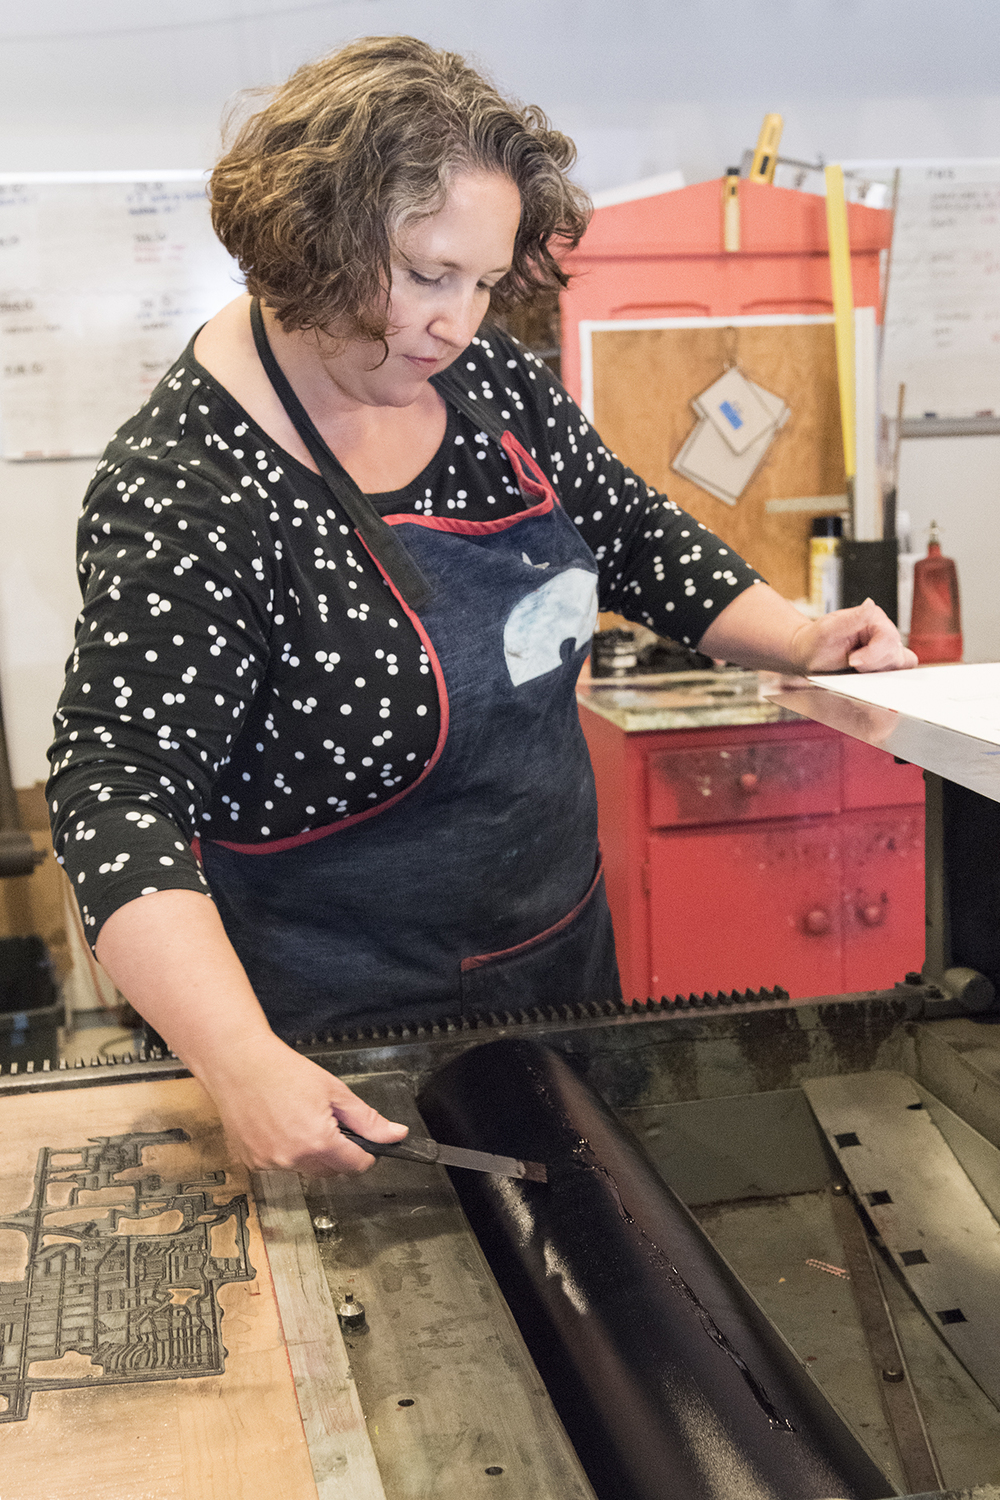 Allison Chapman, letterpress printer/owner at Igloo Letterpress